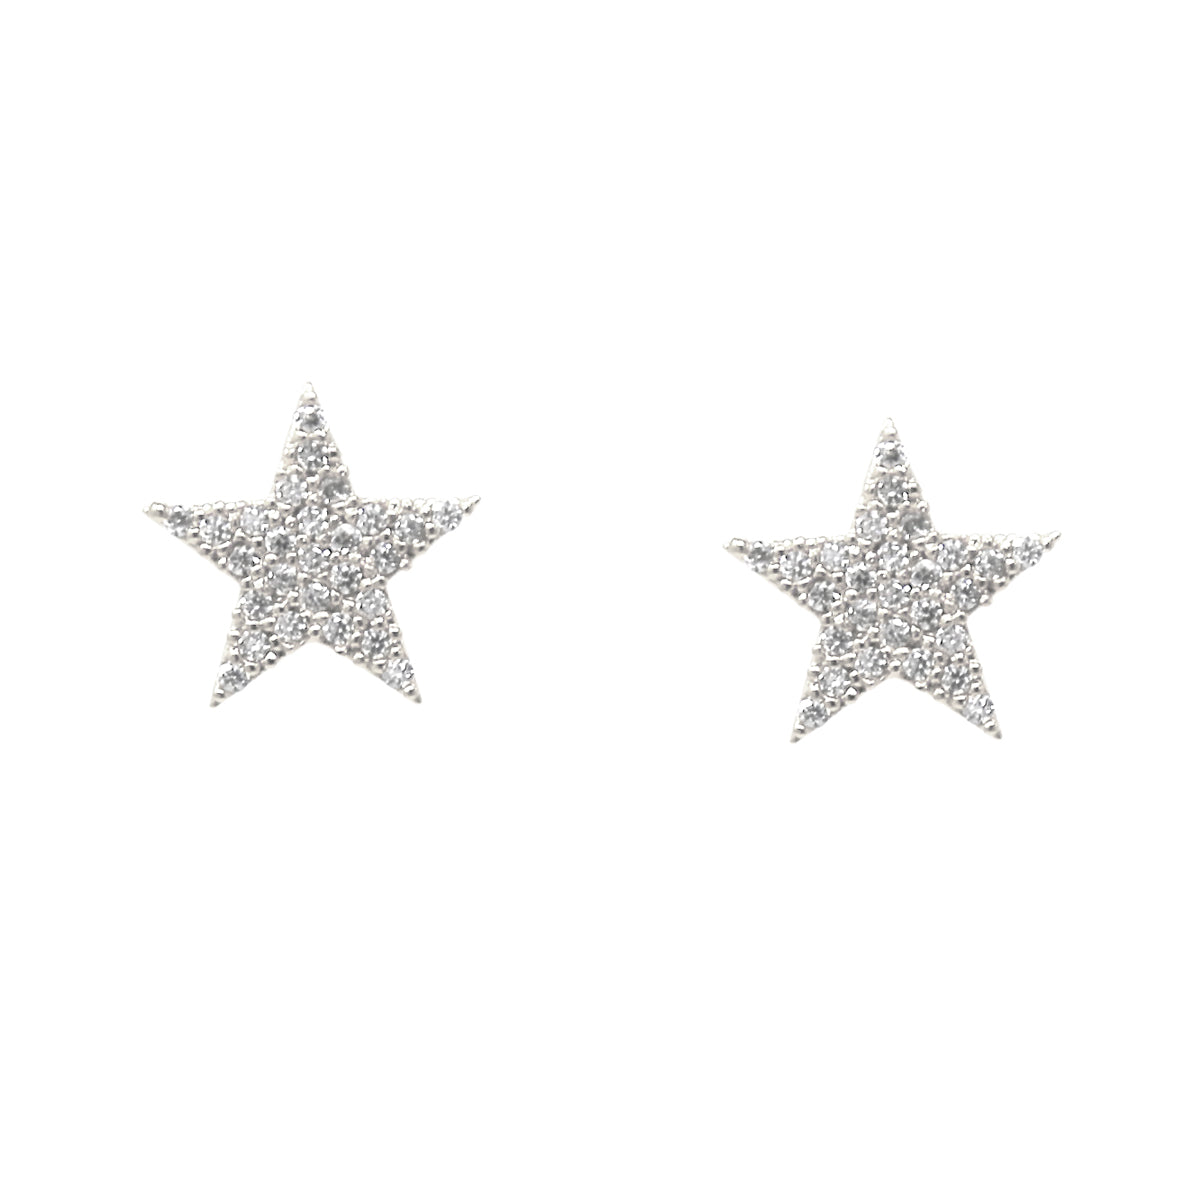 Cubic Zirconia Pave Star Stud Earrings